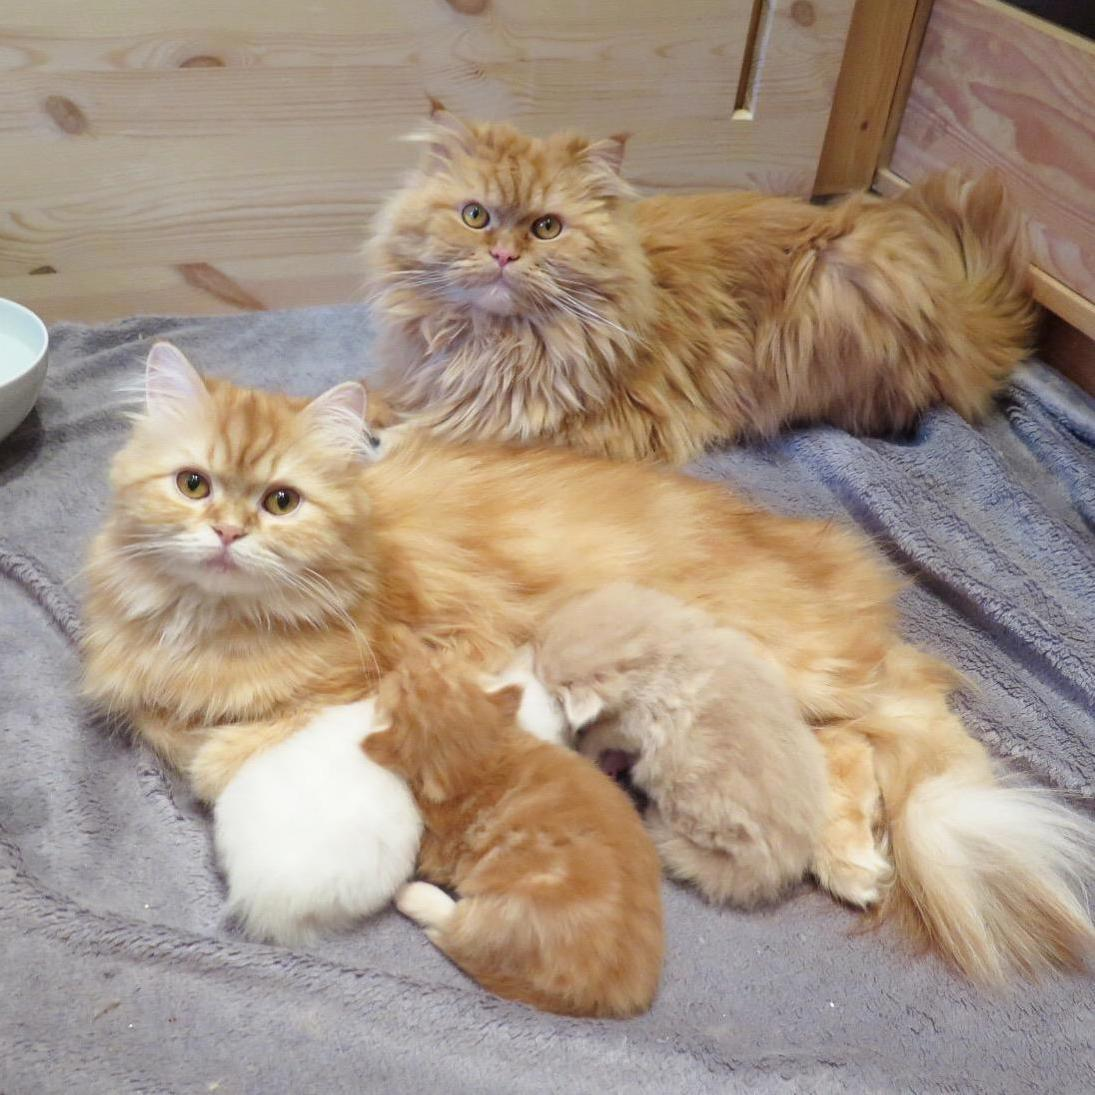 Family portrait, seconds before the father knocked over the water bowl and drenched his family.